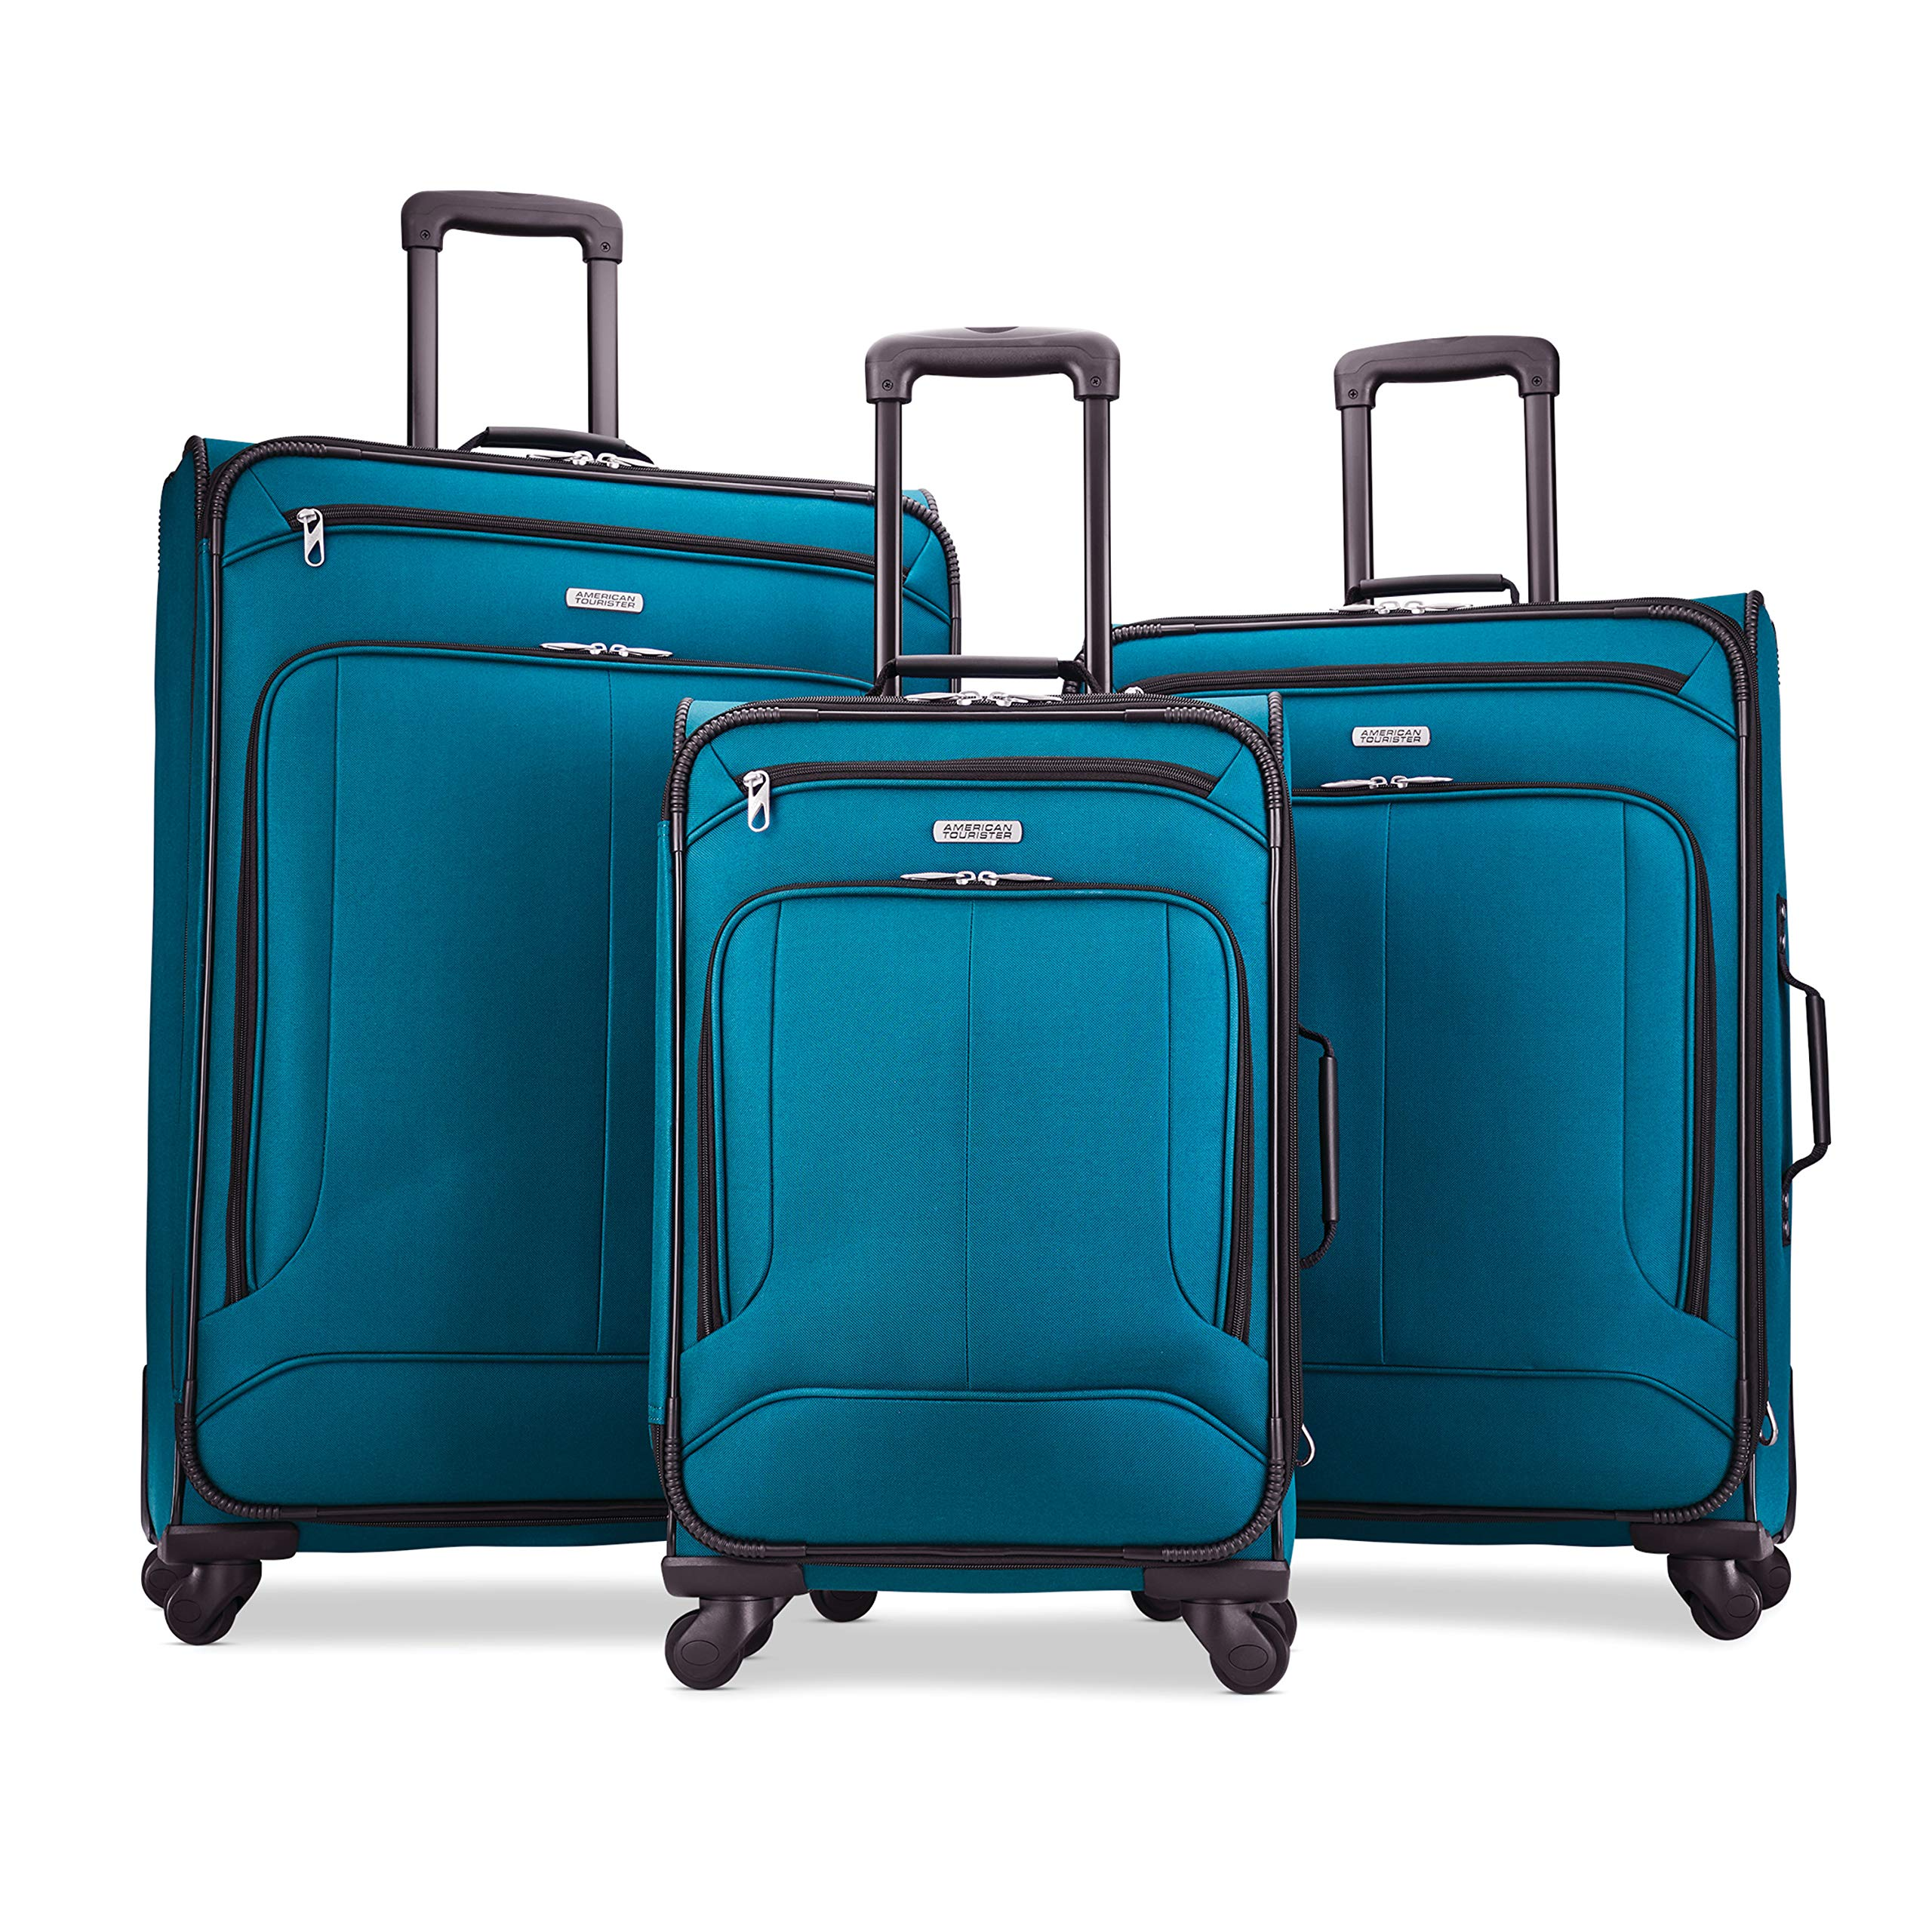 American Tourister Pop Max 3-Piece Softside (sp21/25/29) Luggage Set with Spinner Wheels, Teal by American Tourister